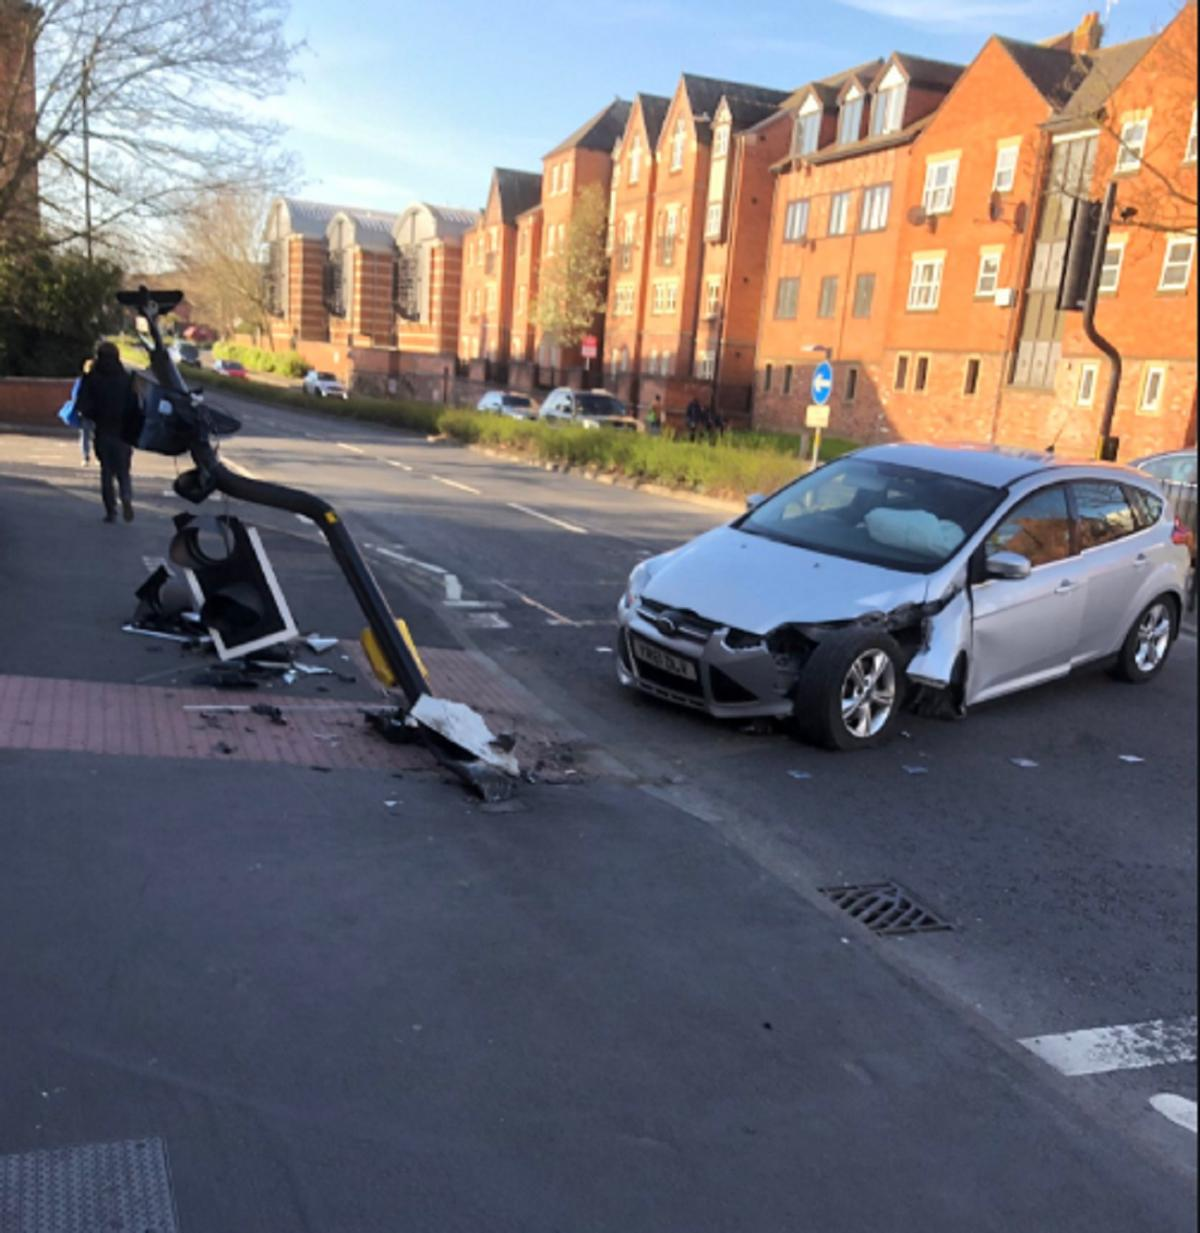 Congestion in city after car destroys traffic lights in crash